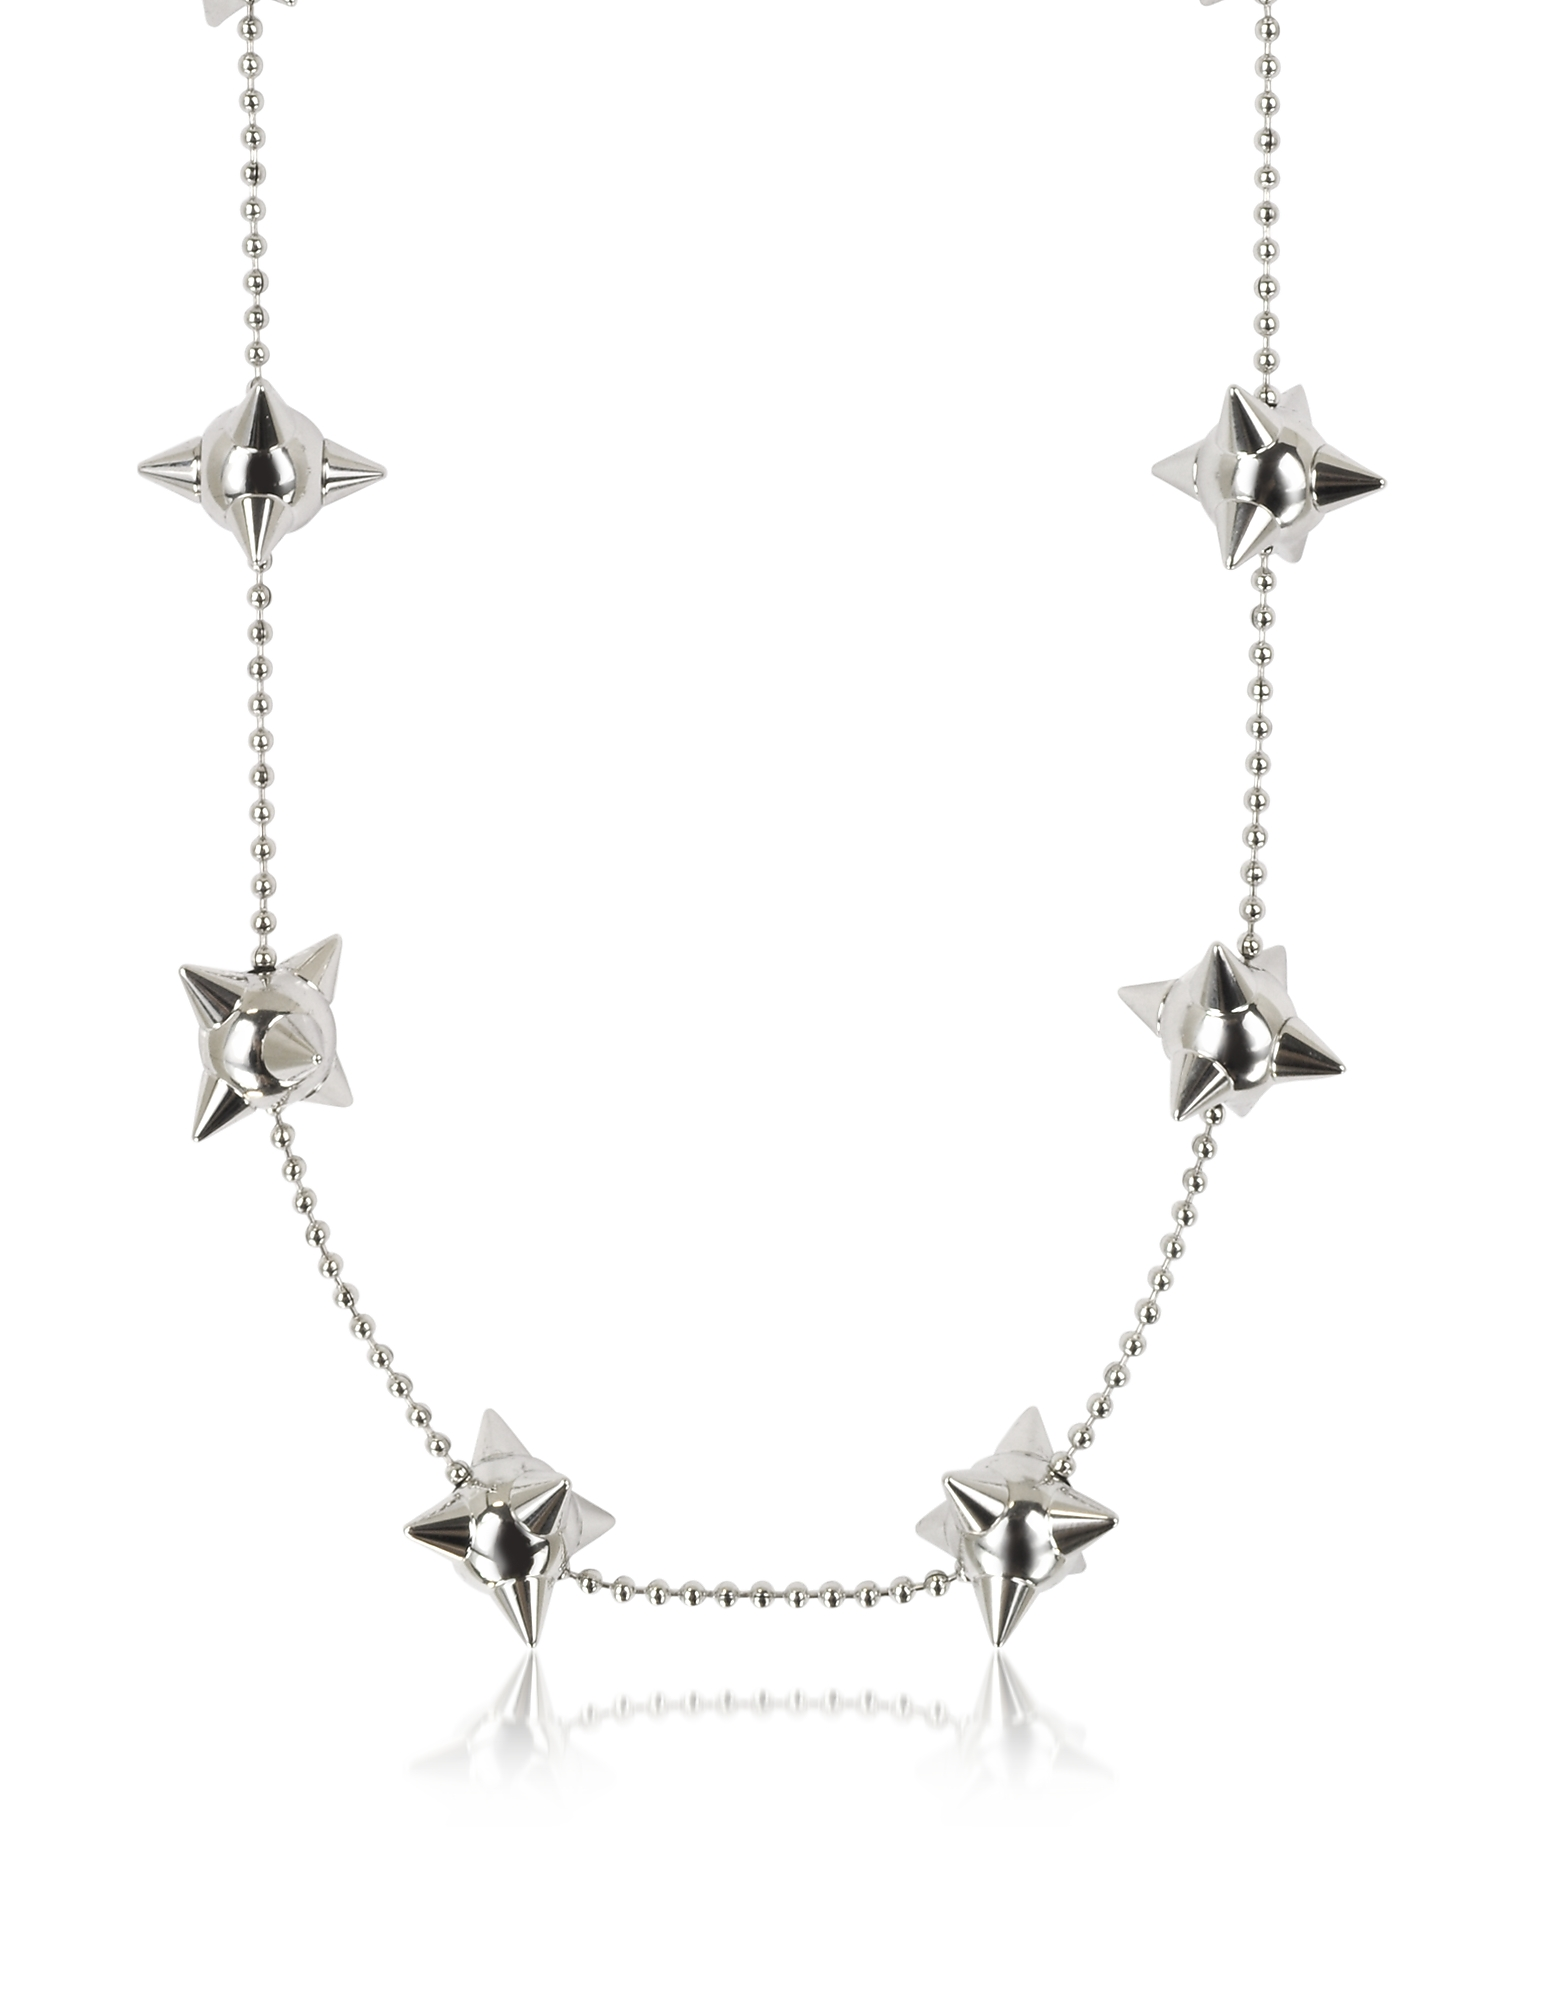 DSquared2 Designer Necklaces, Pierce Me Palladium Plated Metal Spiked Chain Necklace